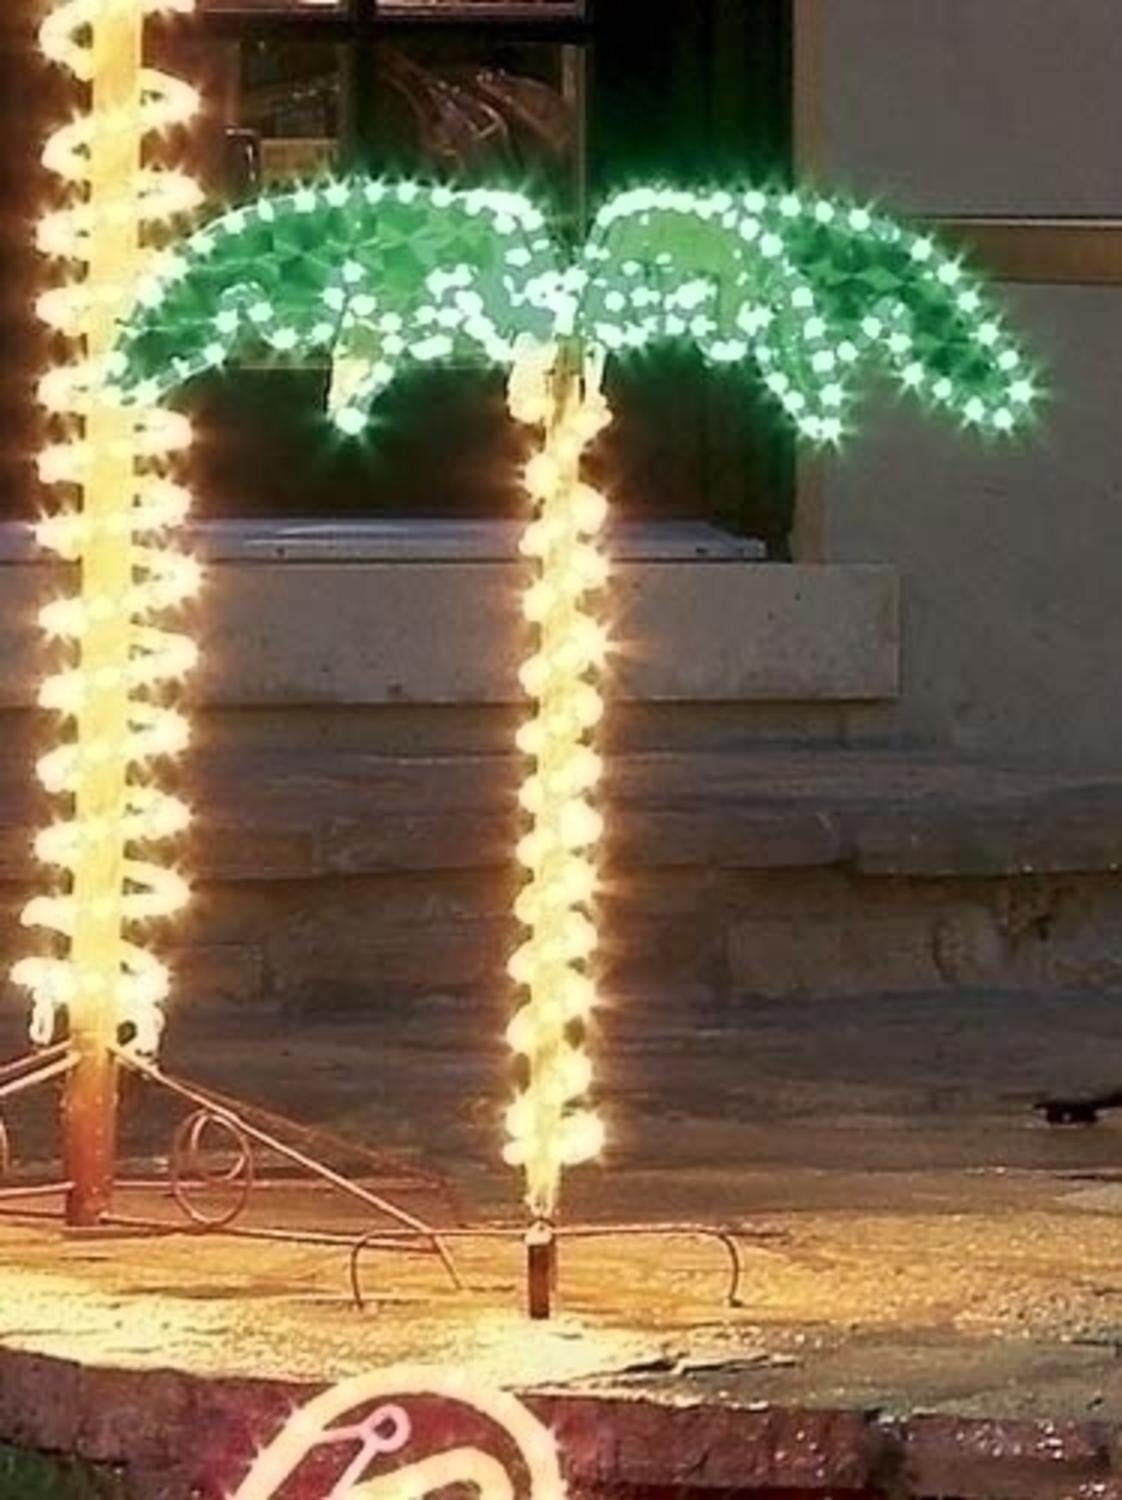 Outdoor Light Up Palm Tree Part - 42: Amazon.com: 4.5u0027 Tropical Lighted Holographic Rope Light Outdoor Palm Tree  Yard Decoration: Garden U0026 Outdoor